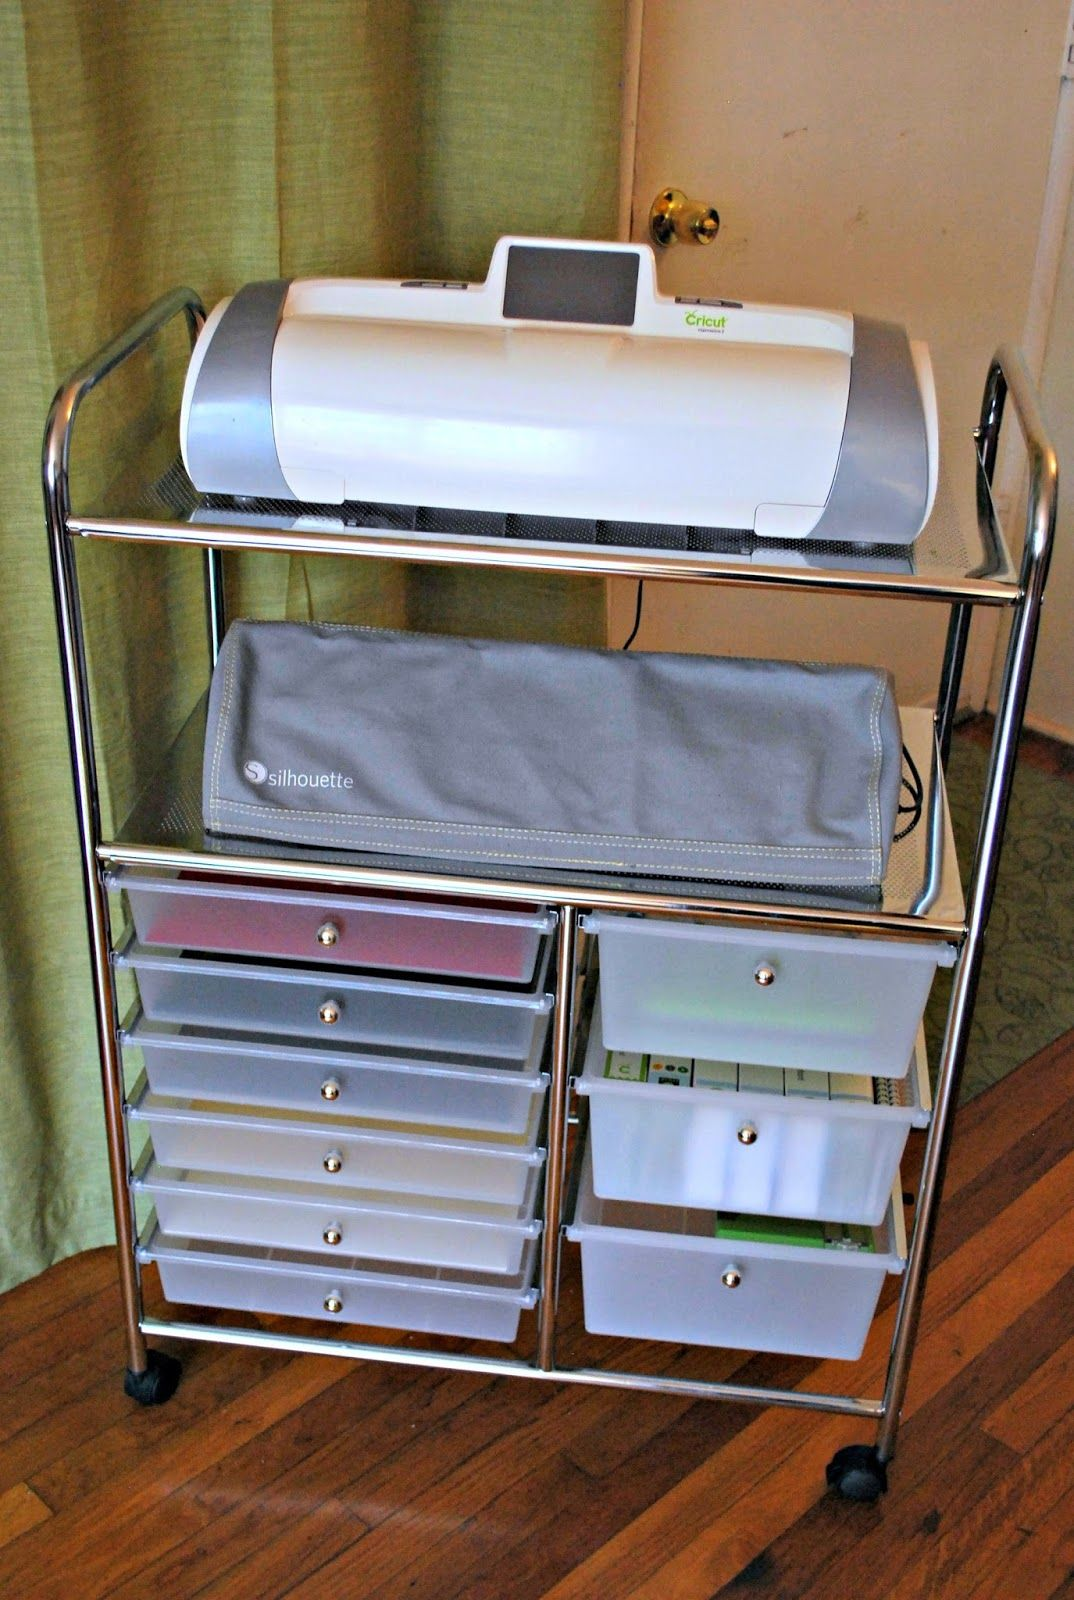 Shemaine Smith A Fabulous Cricut Storage Find